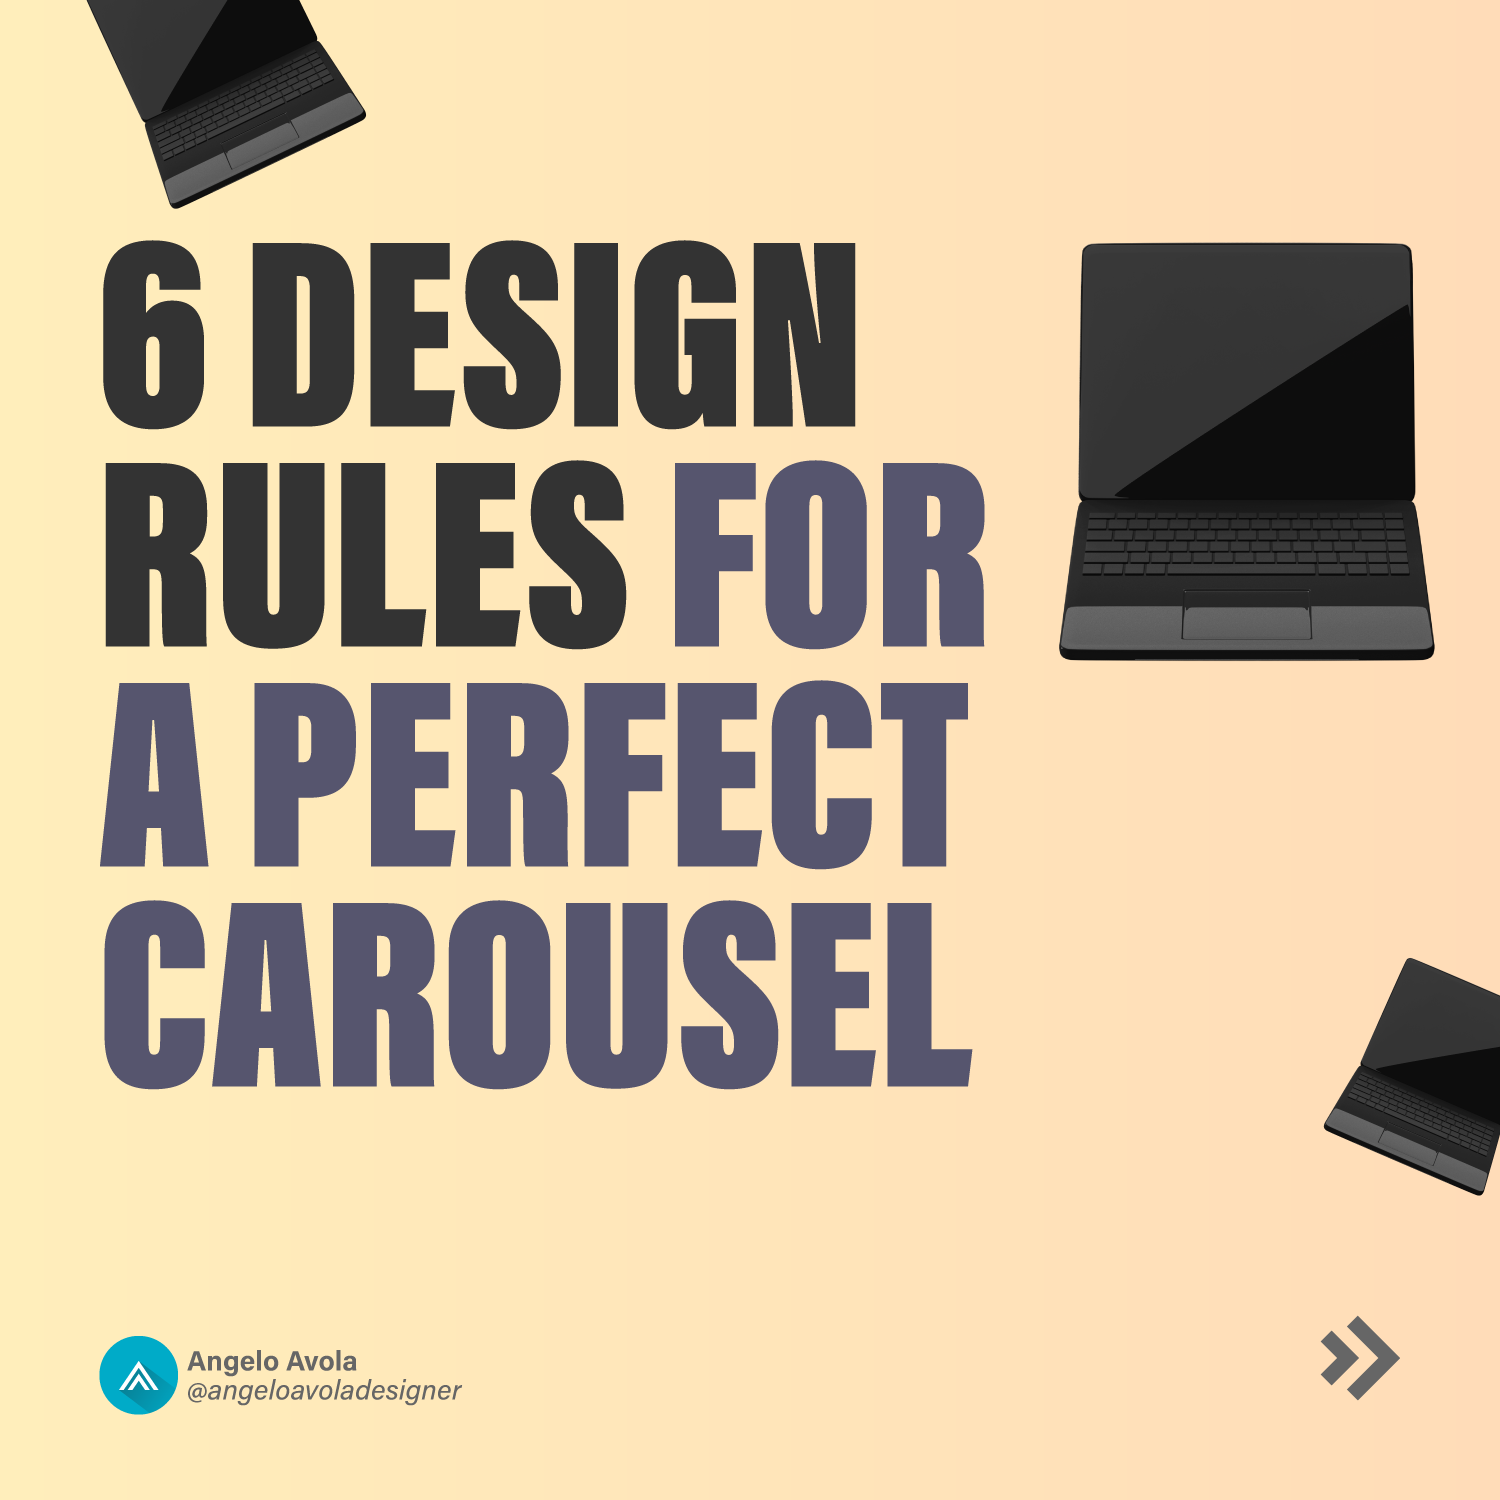 6 design rules for a perfect carousel